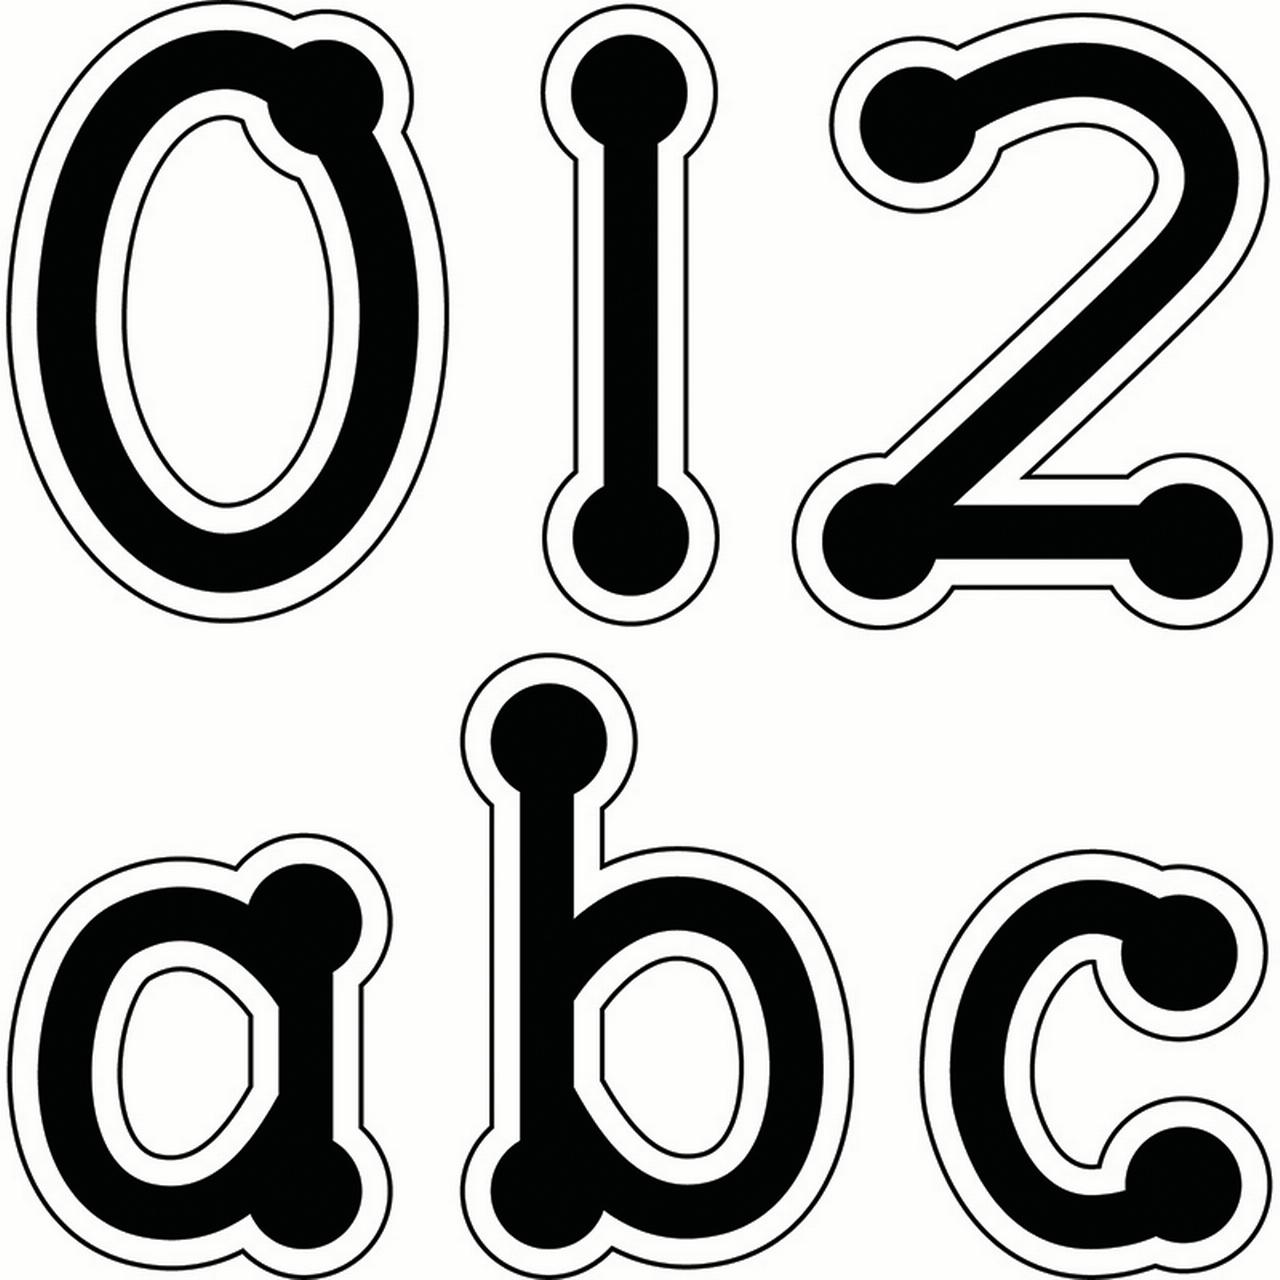 BLACK DOT-TO-DOT LOWERCASE LETTERS STICKERS